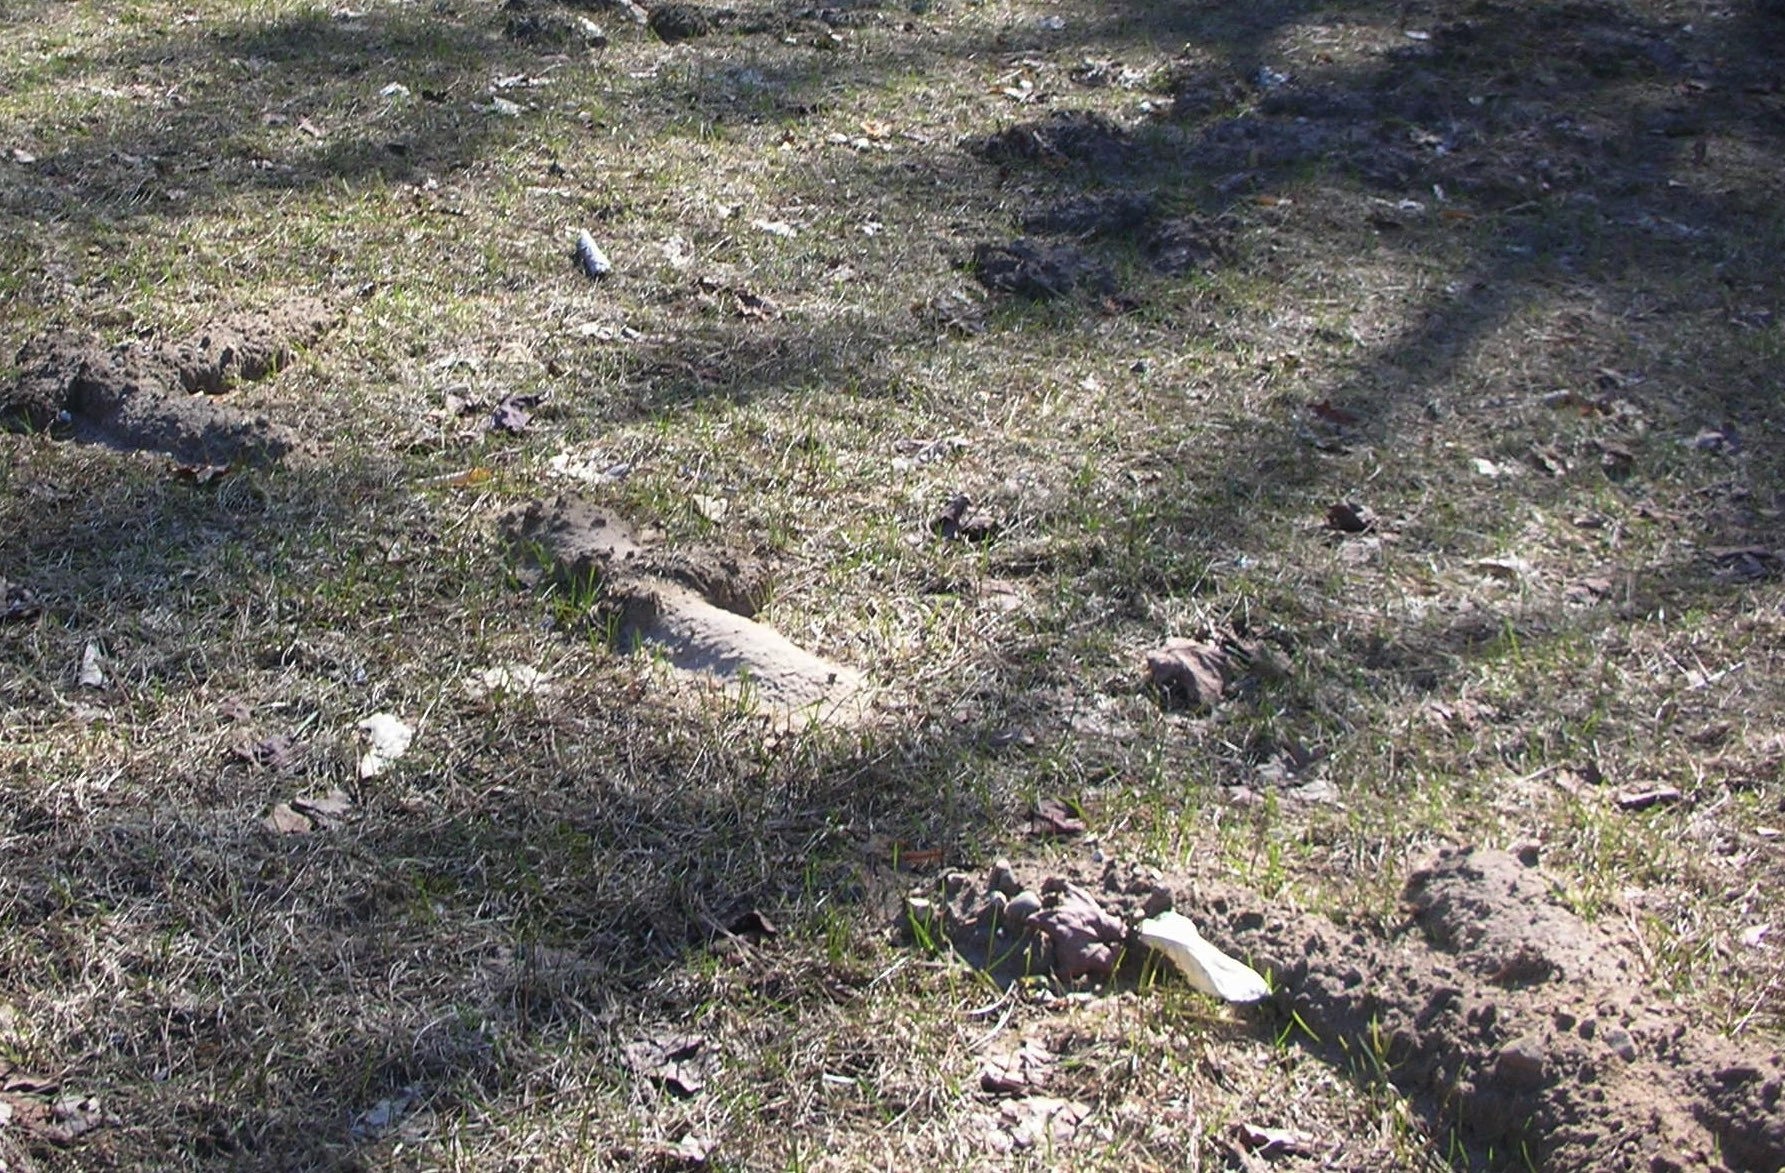 How to get rid of ground moles - Damage Caused By Moles